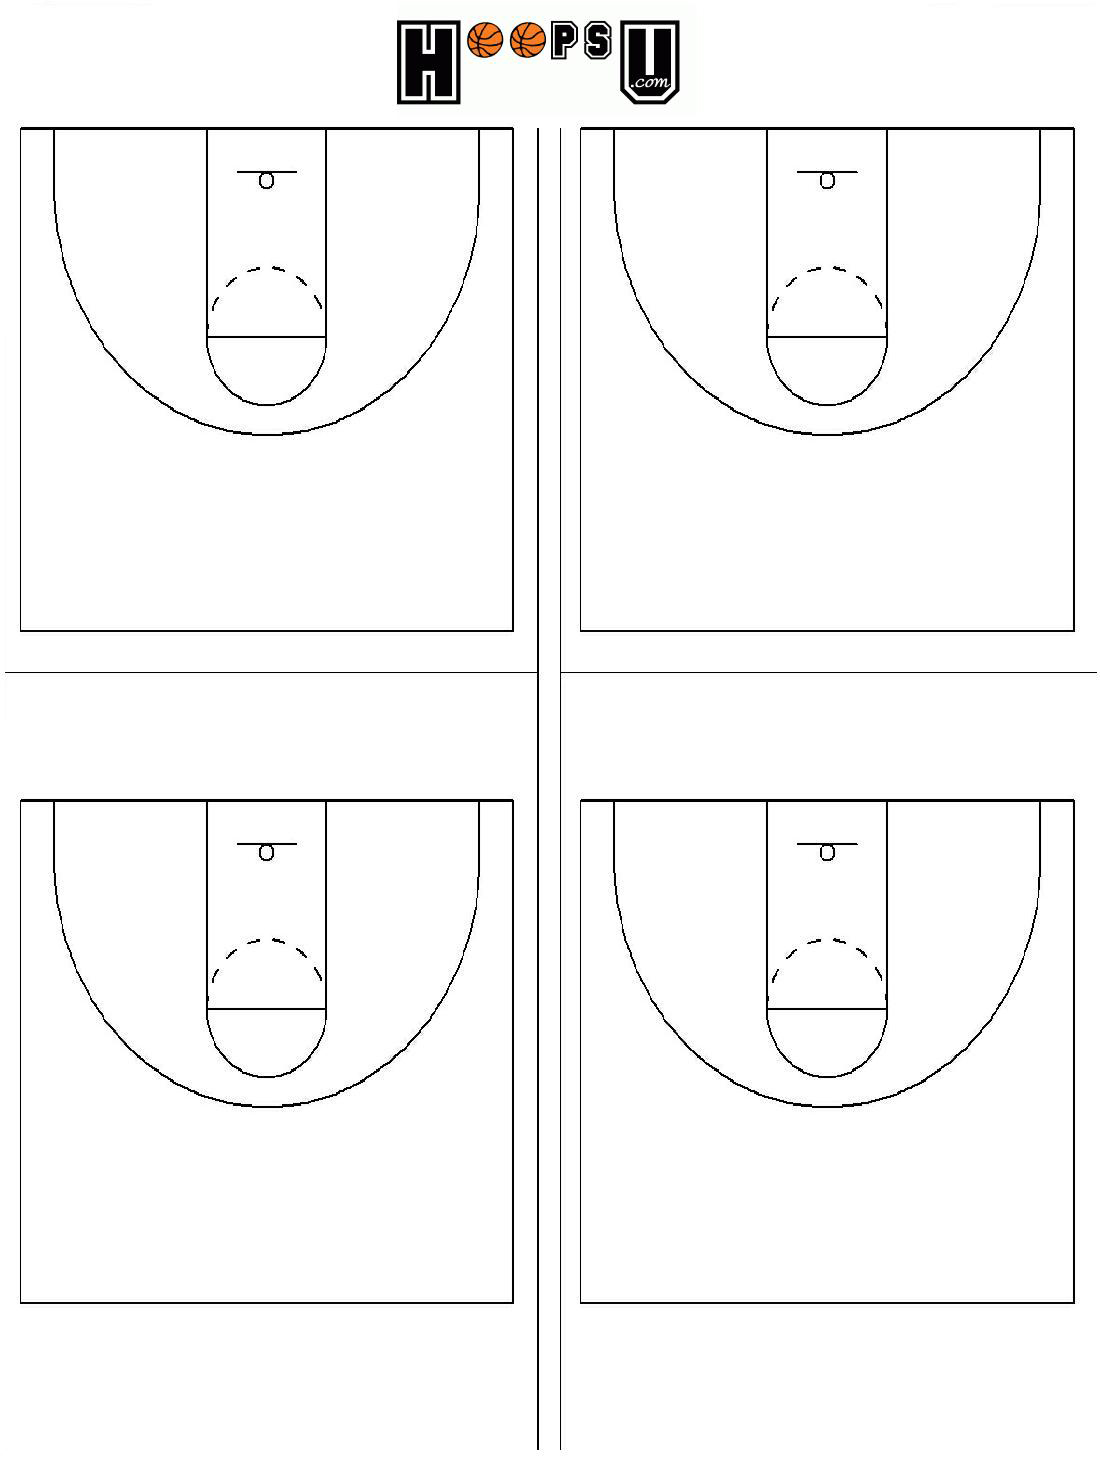 basketball half court diagrams printable   clipart best    basketball playbook  blank volleyball court sheets   blank volleyball court pages  diagram